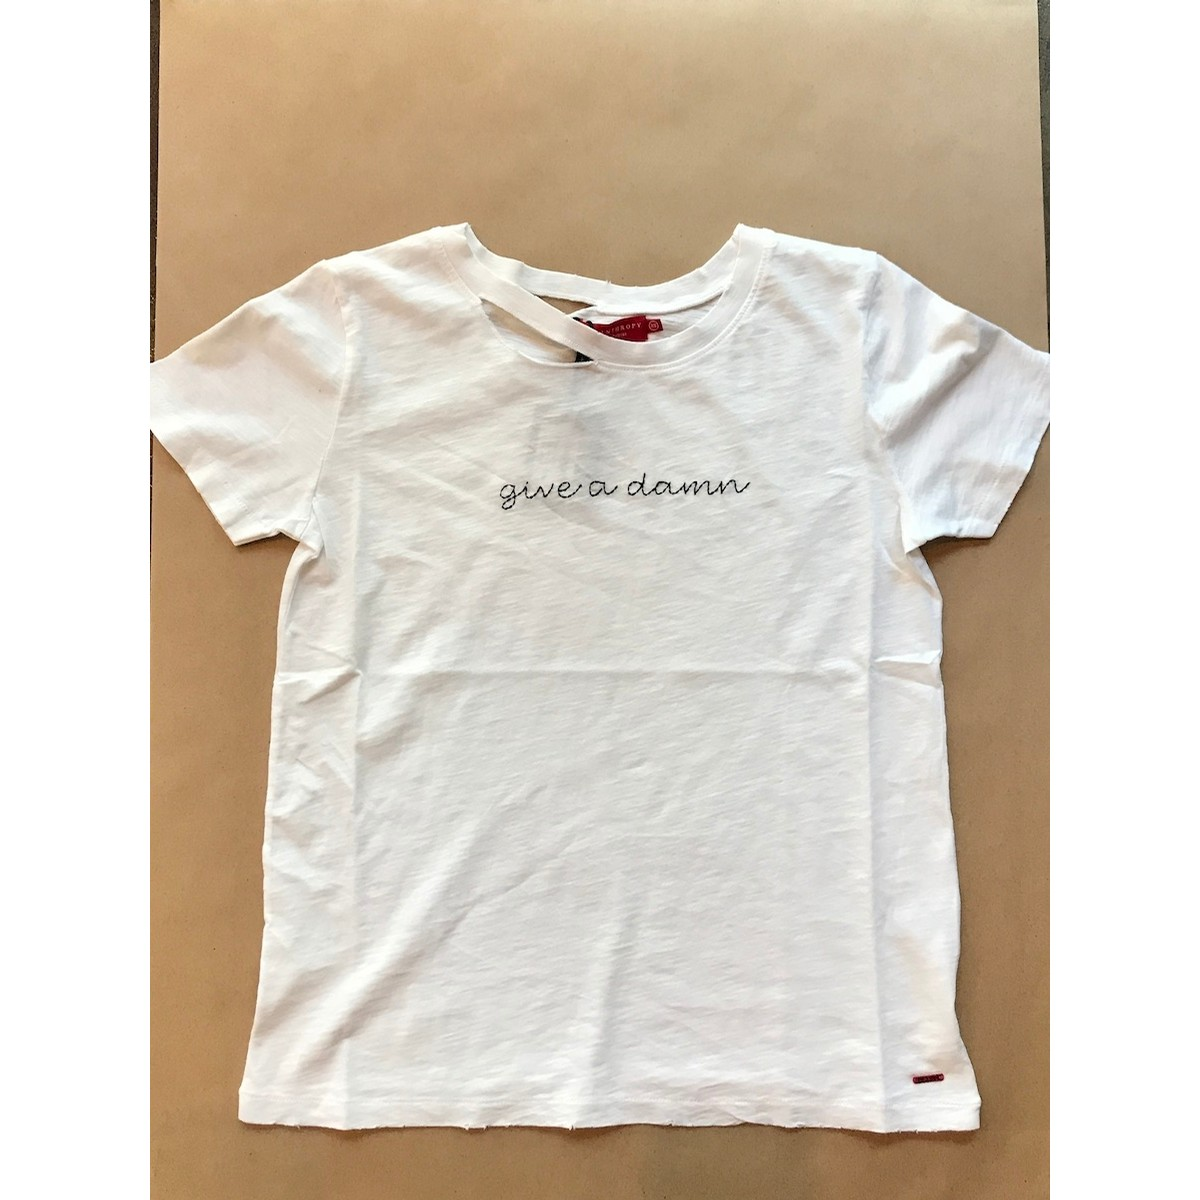 N:Philanthropy Harlow Tee Give a Damn: White